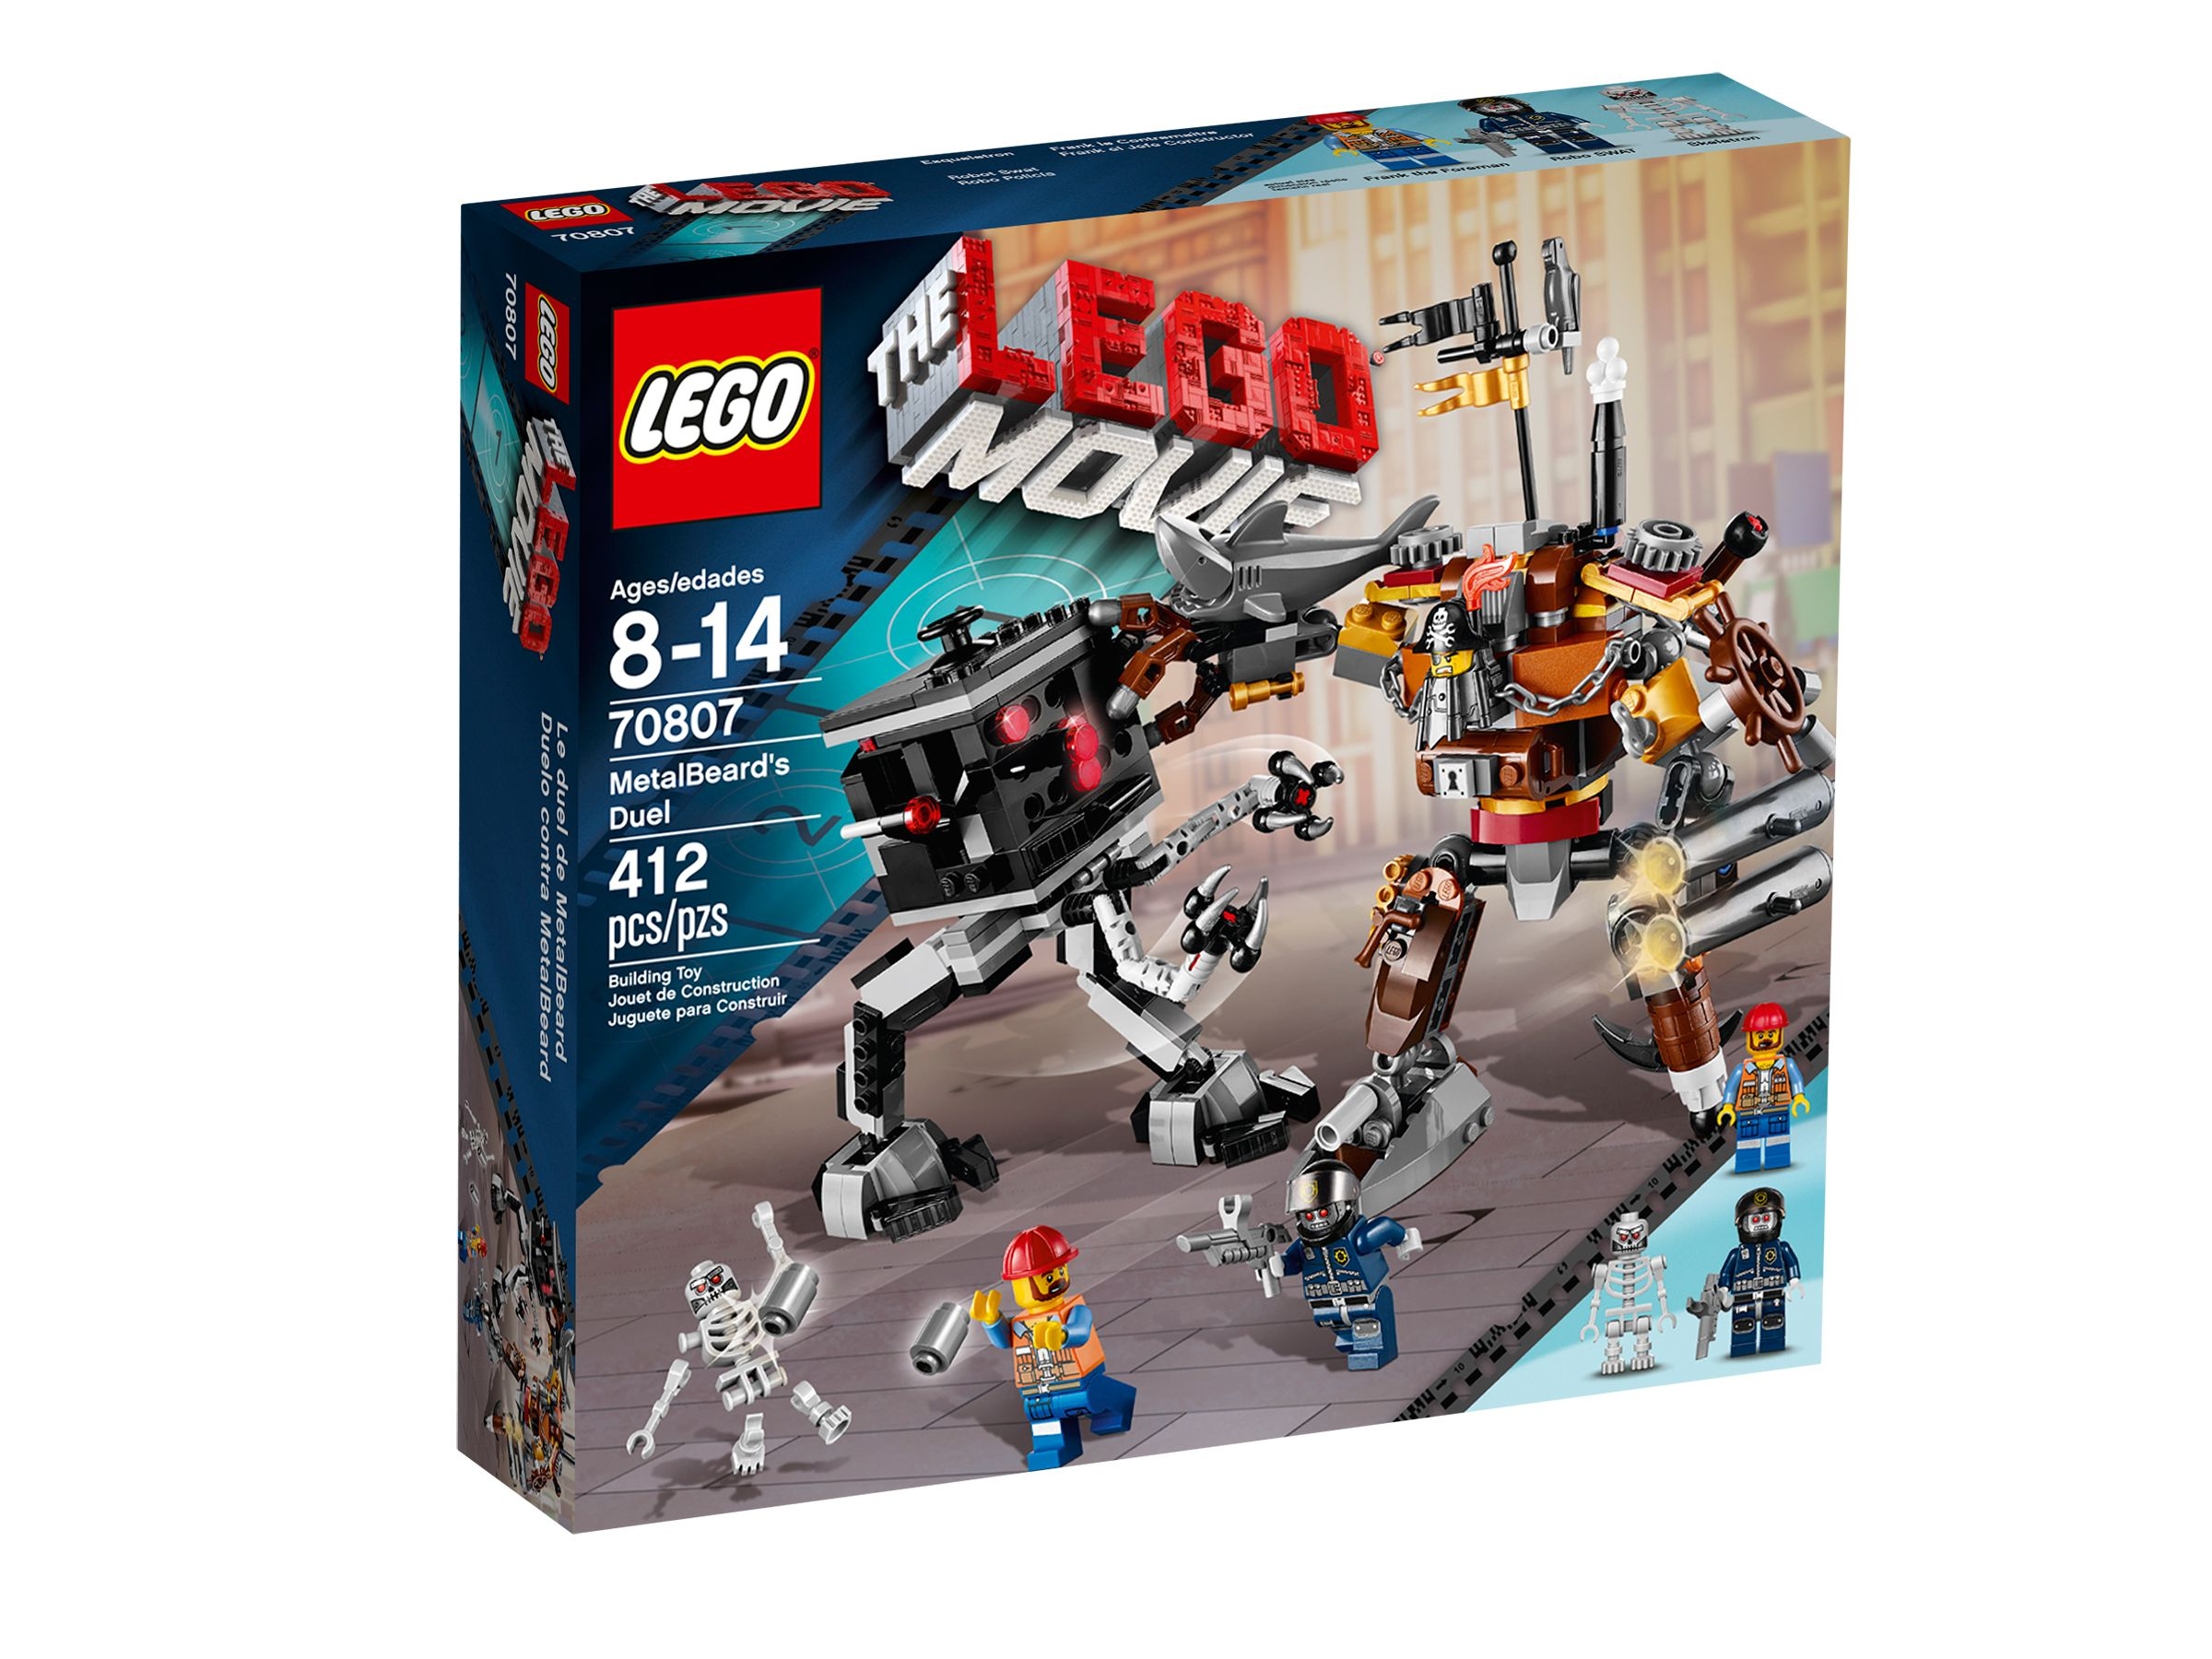 LEGO The LEGO Movie 70807 Eisenbarts Duell LEGO_70807_alt1.jpg